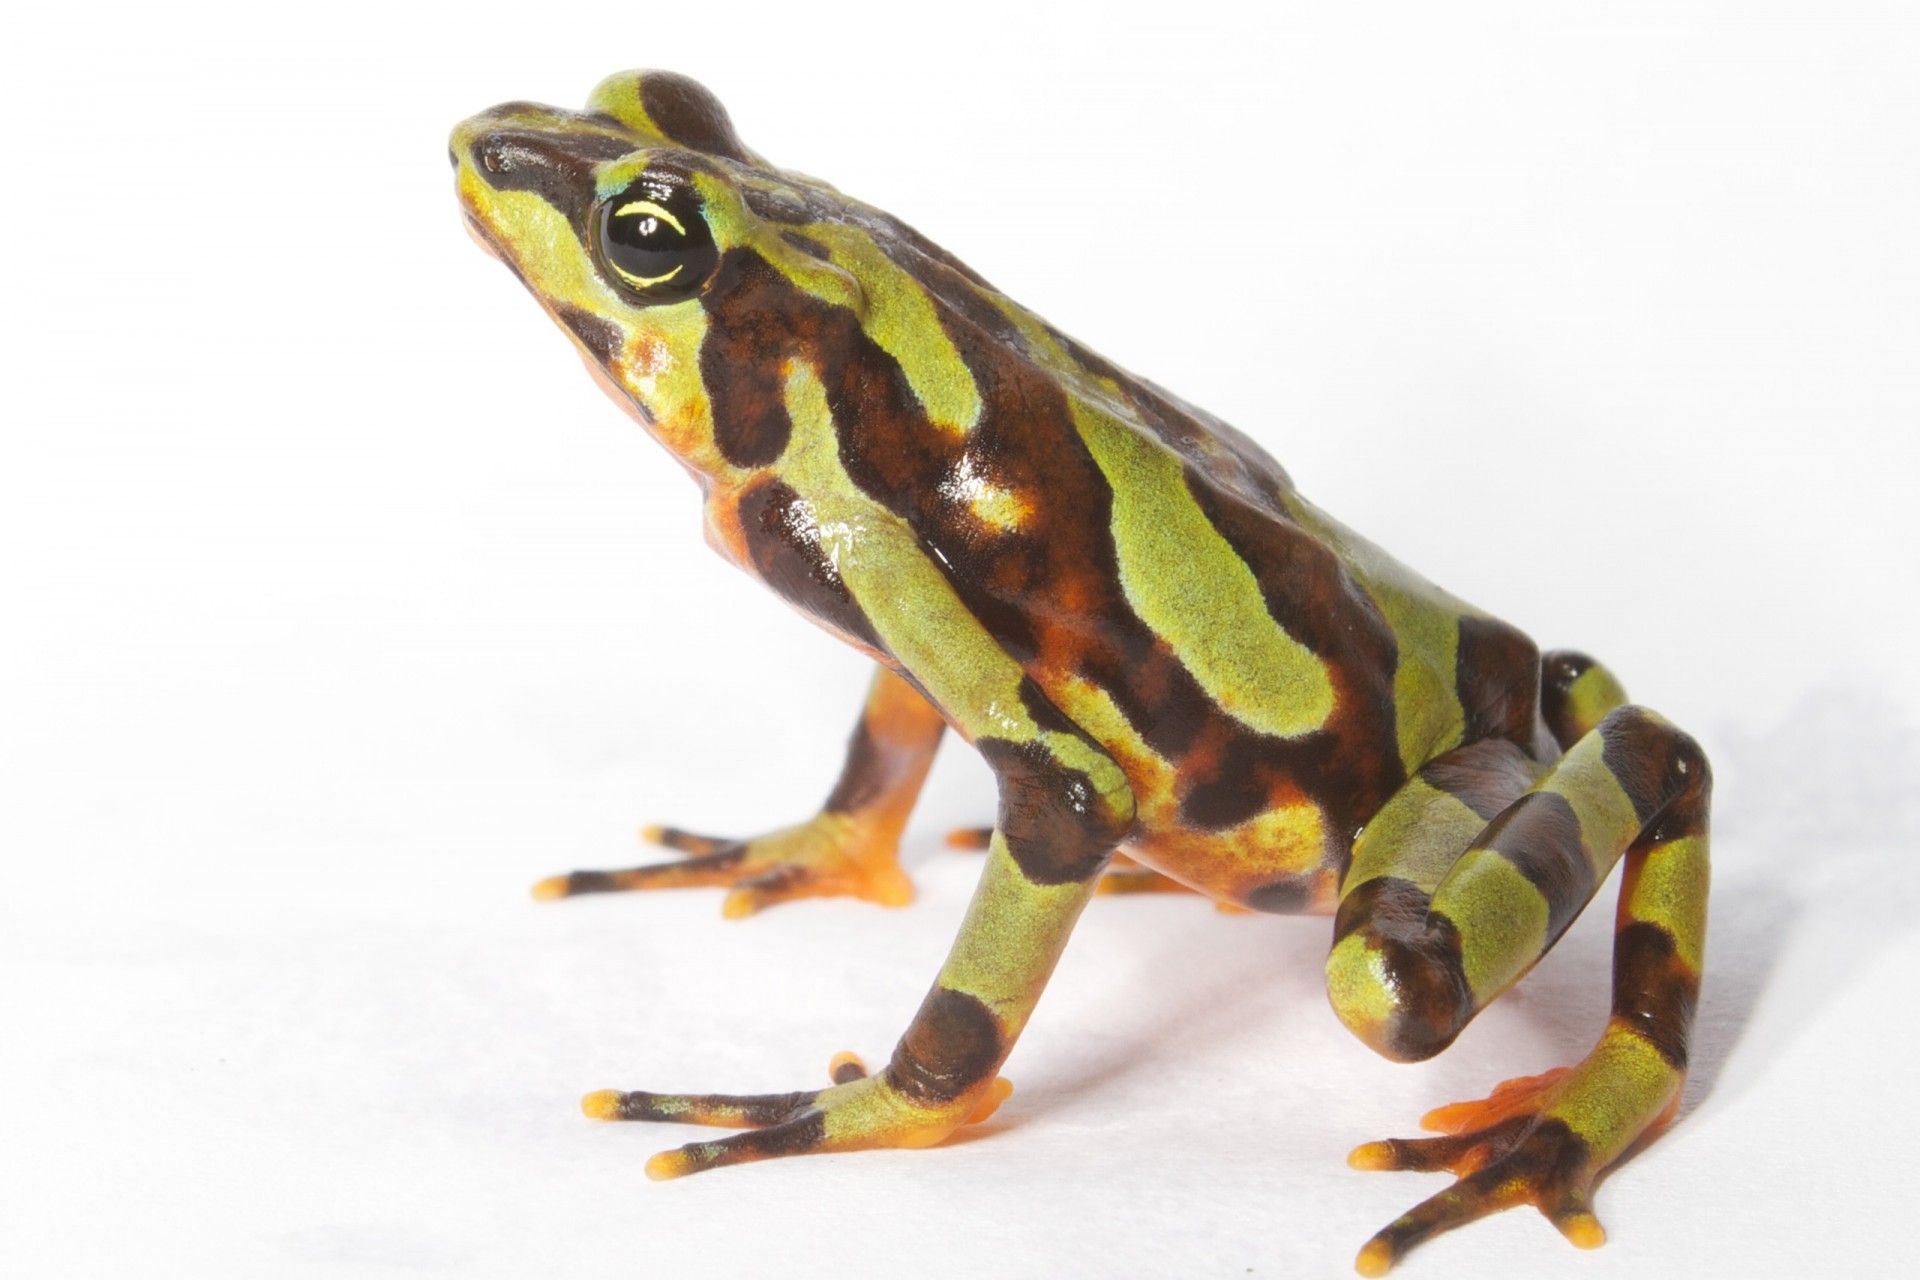 This Panamanian frog demonstrates a very wide range of color patters, thus its name, Atelopus varius